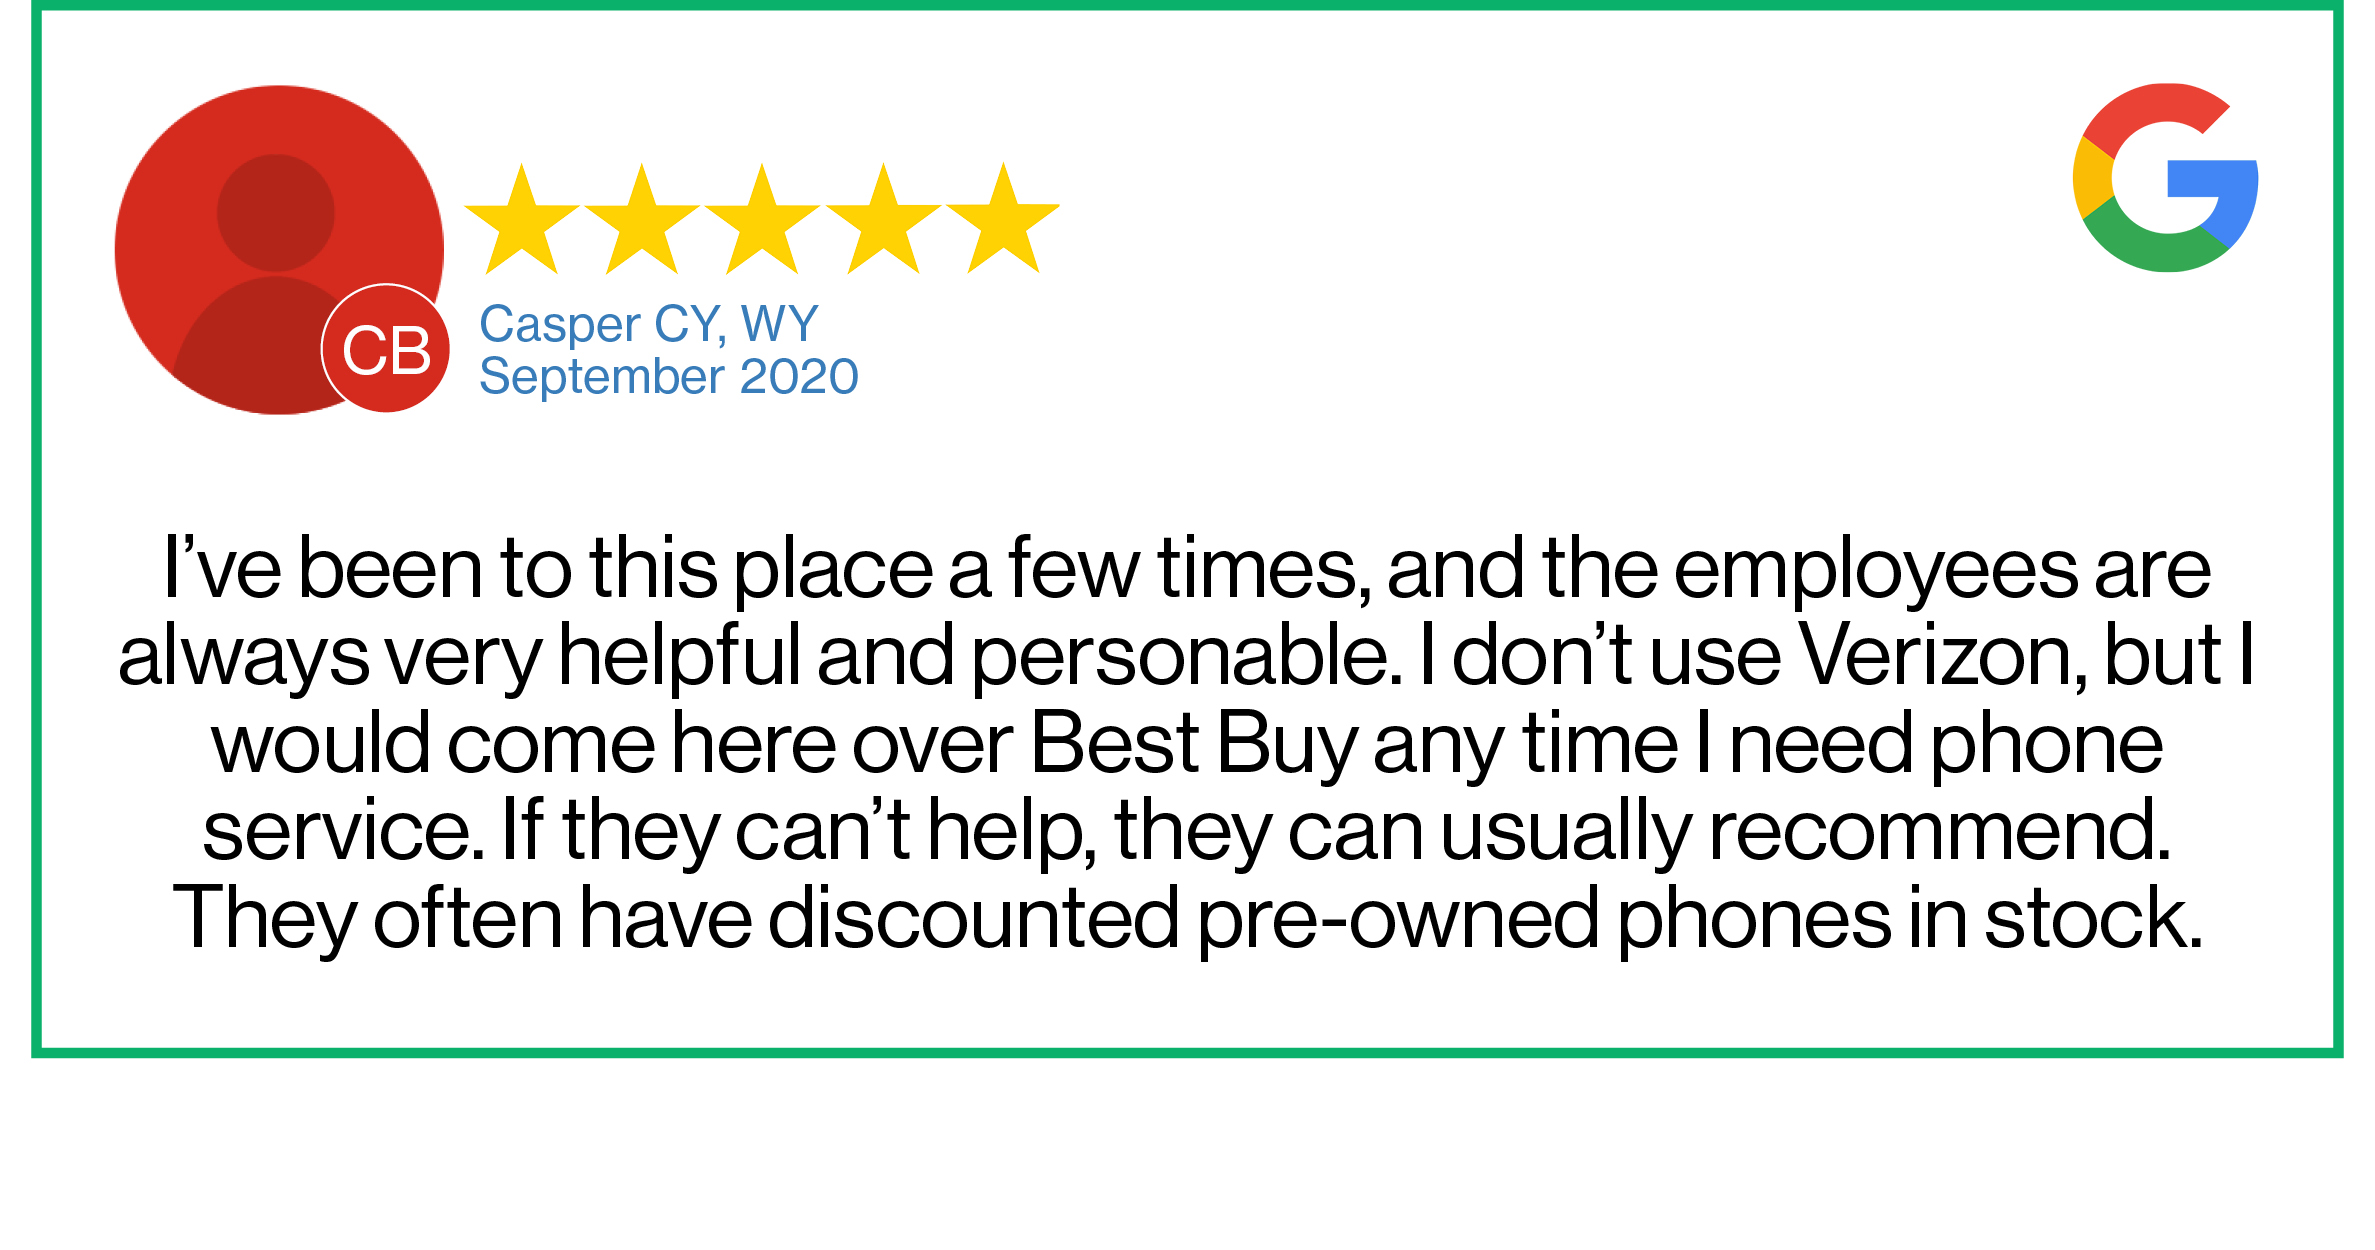 Check out this recent customer review about the Verizon Cellular Plus store in Casper, Wyoming.